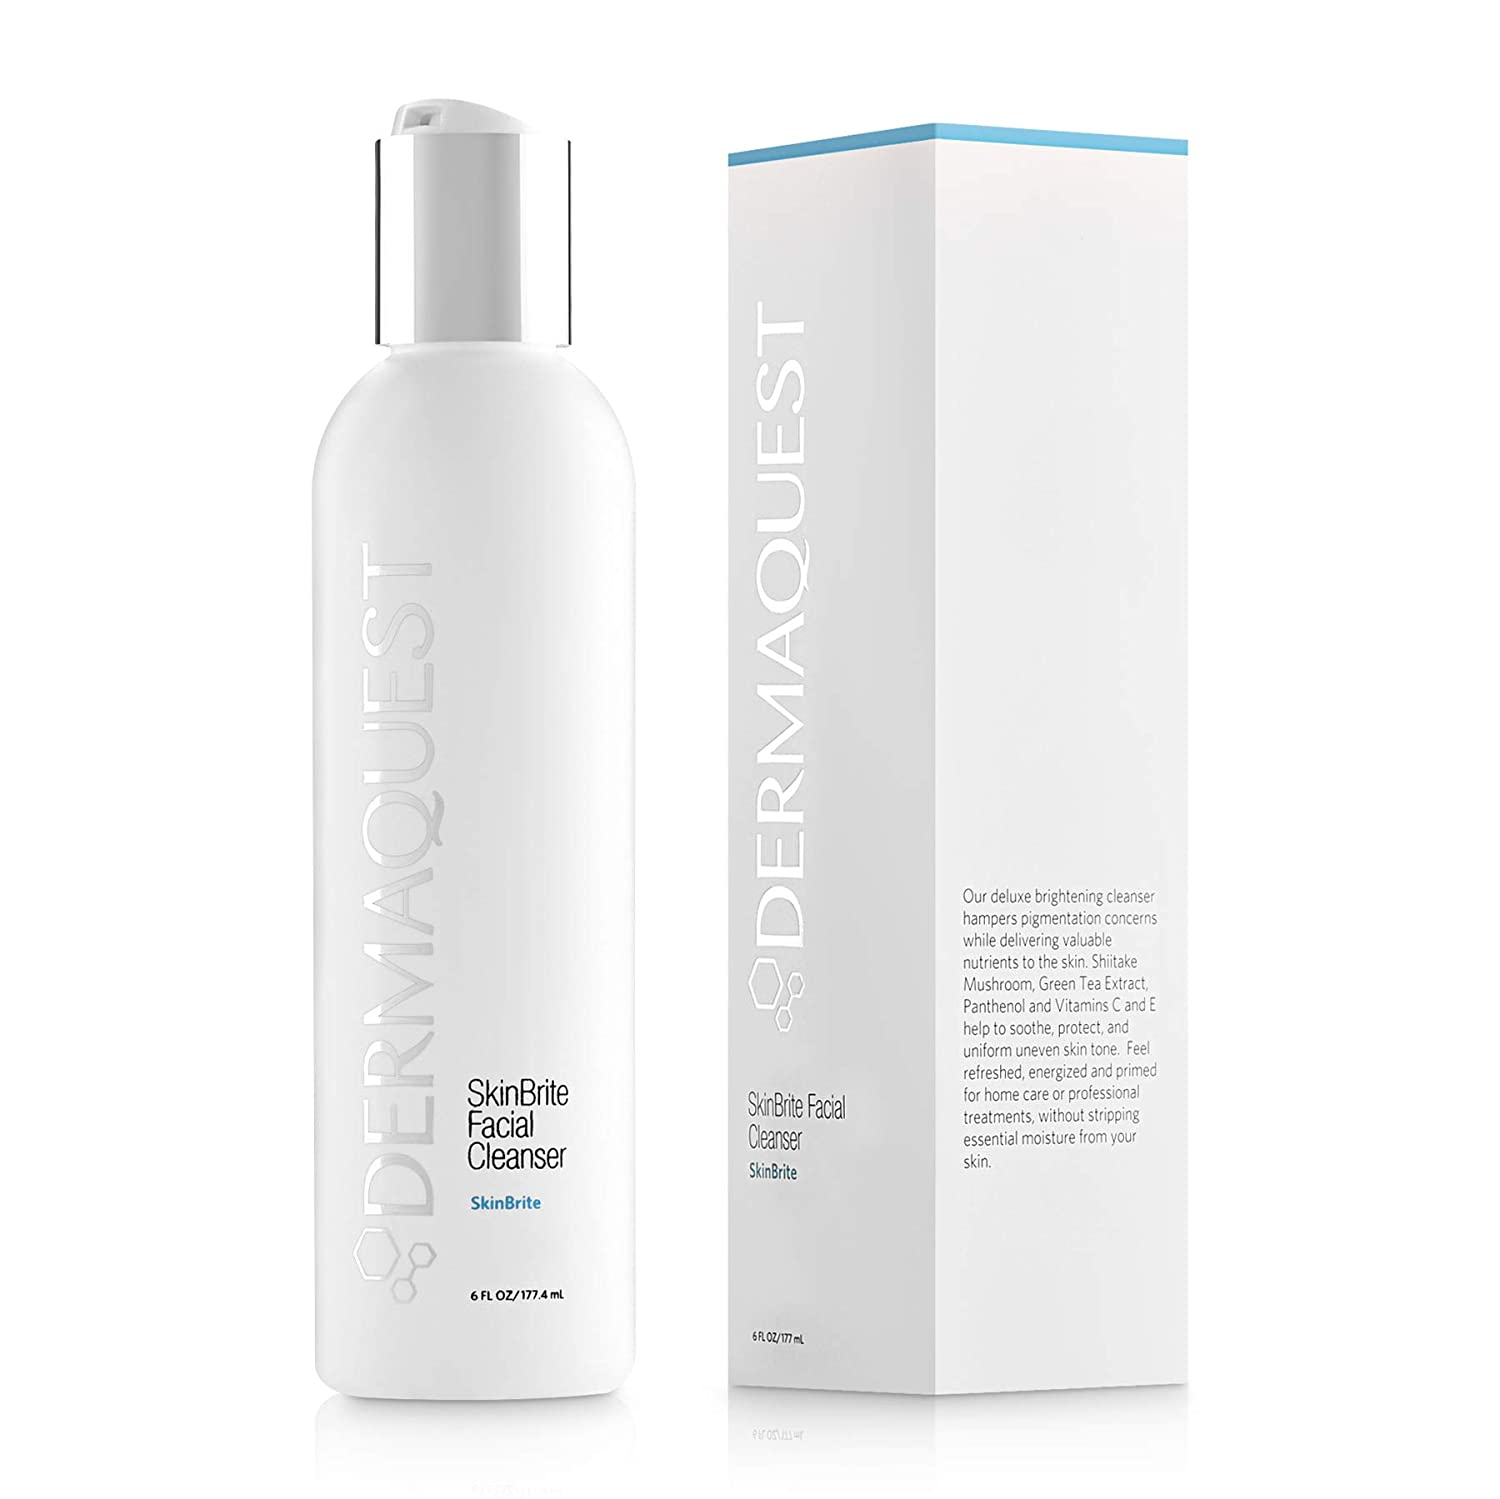 New mail order SEAL limited product DermaQuest SkinBrite Facial 6oz Cleanser